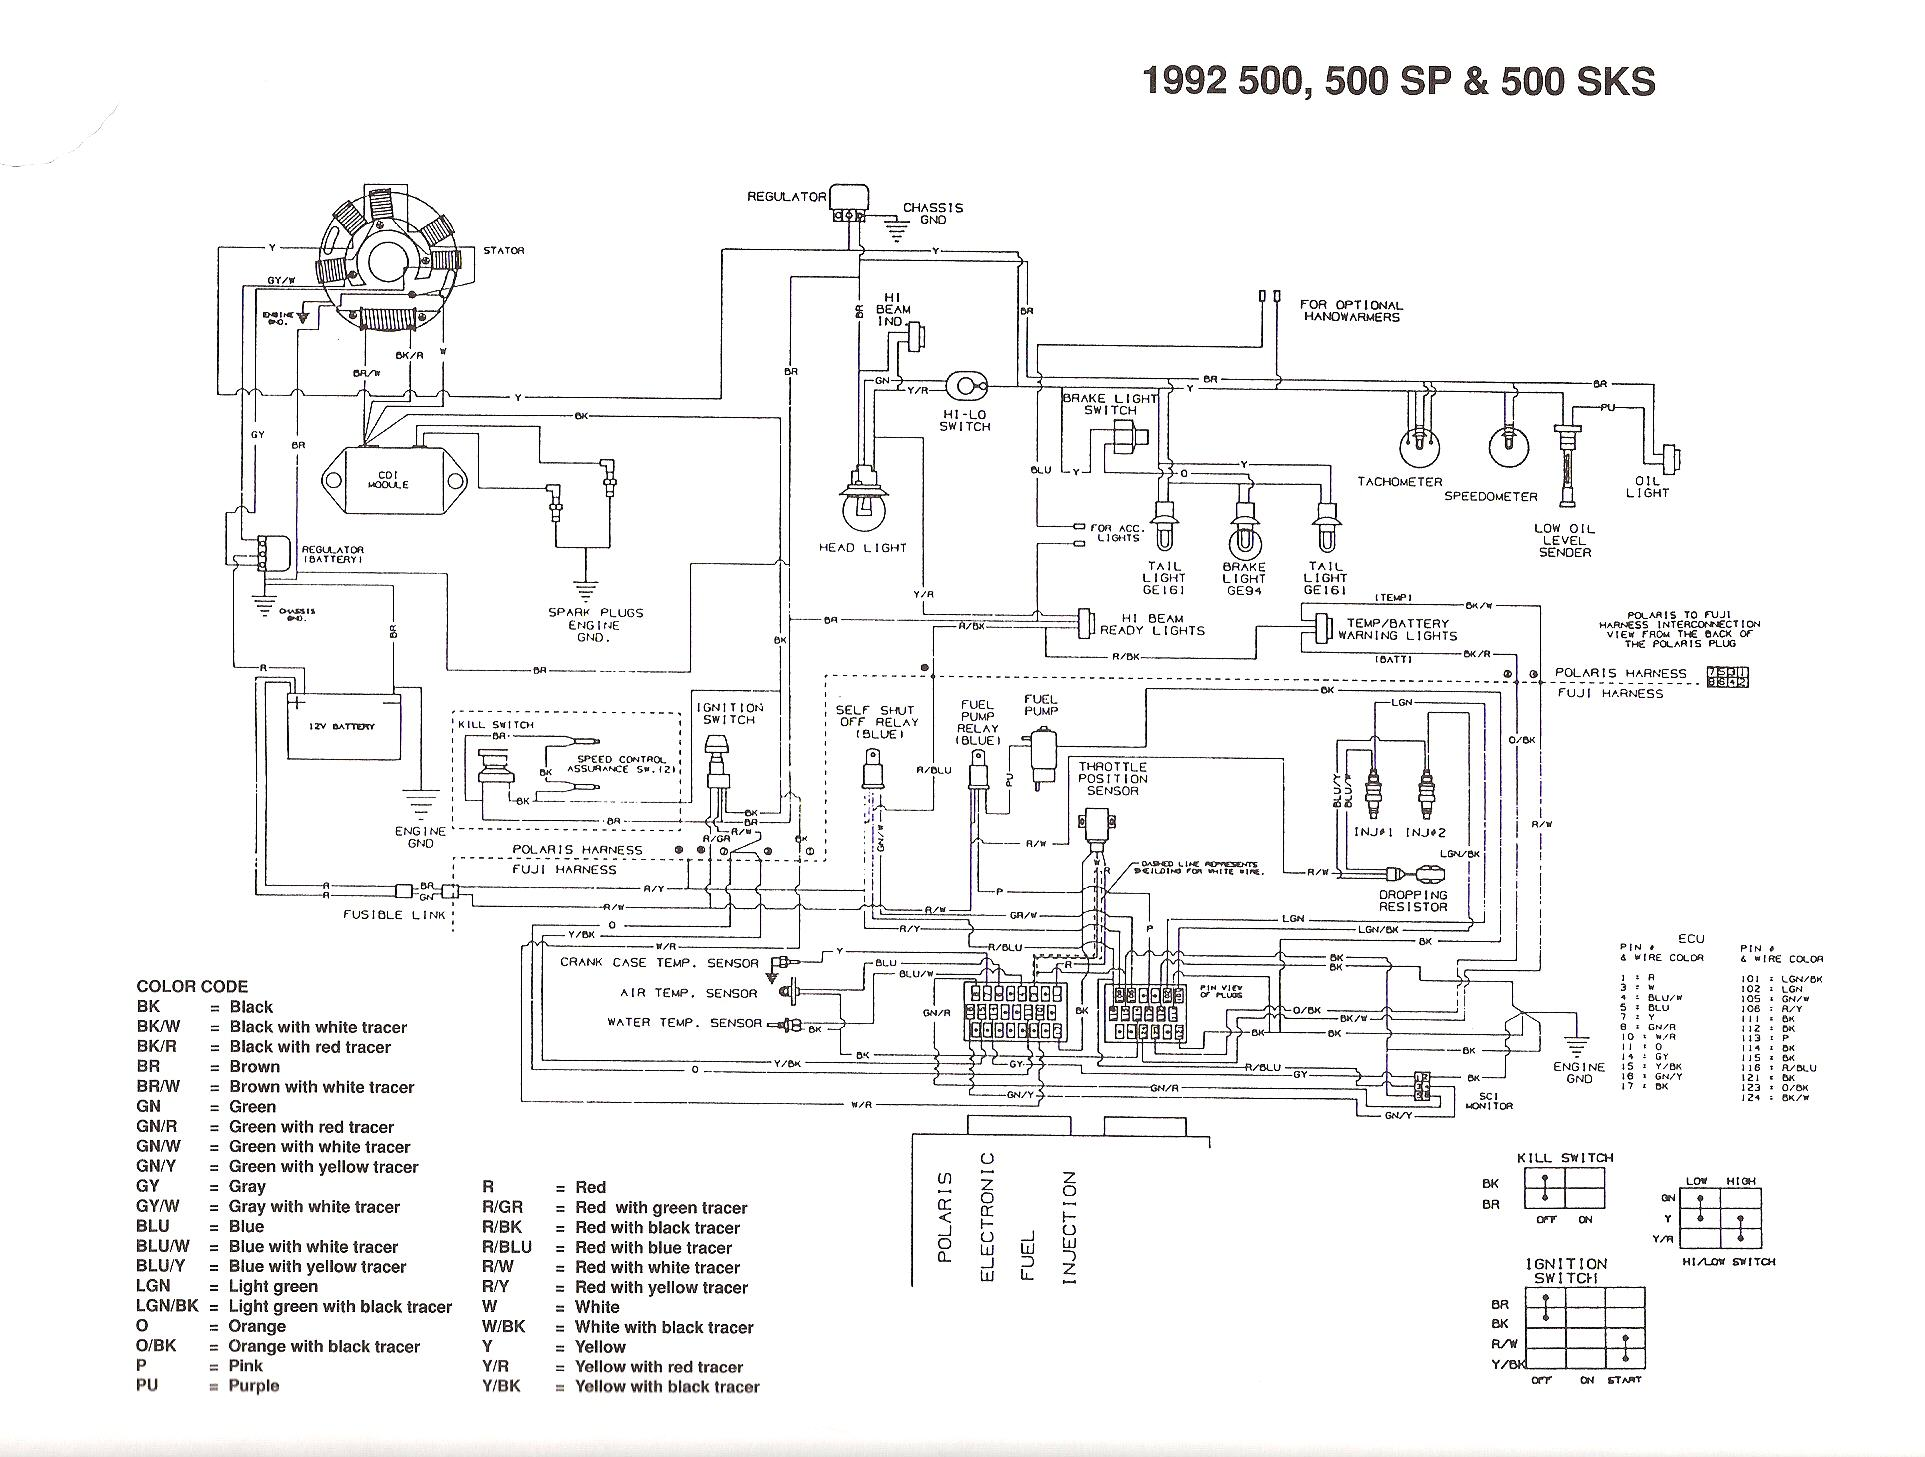 hight resolution of zr 580 wiring diagram wiring diagram centrezr 580 wiring diagram wiring library1994 arctic cat ext 580